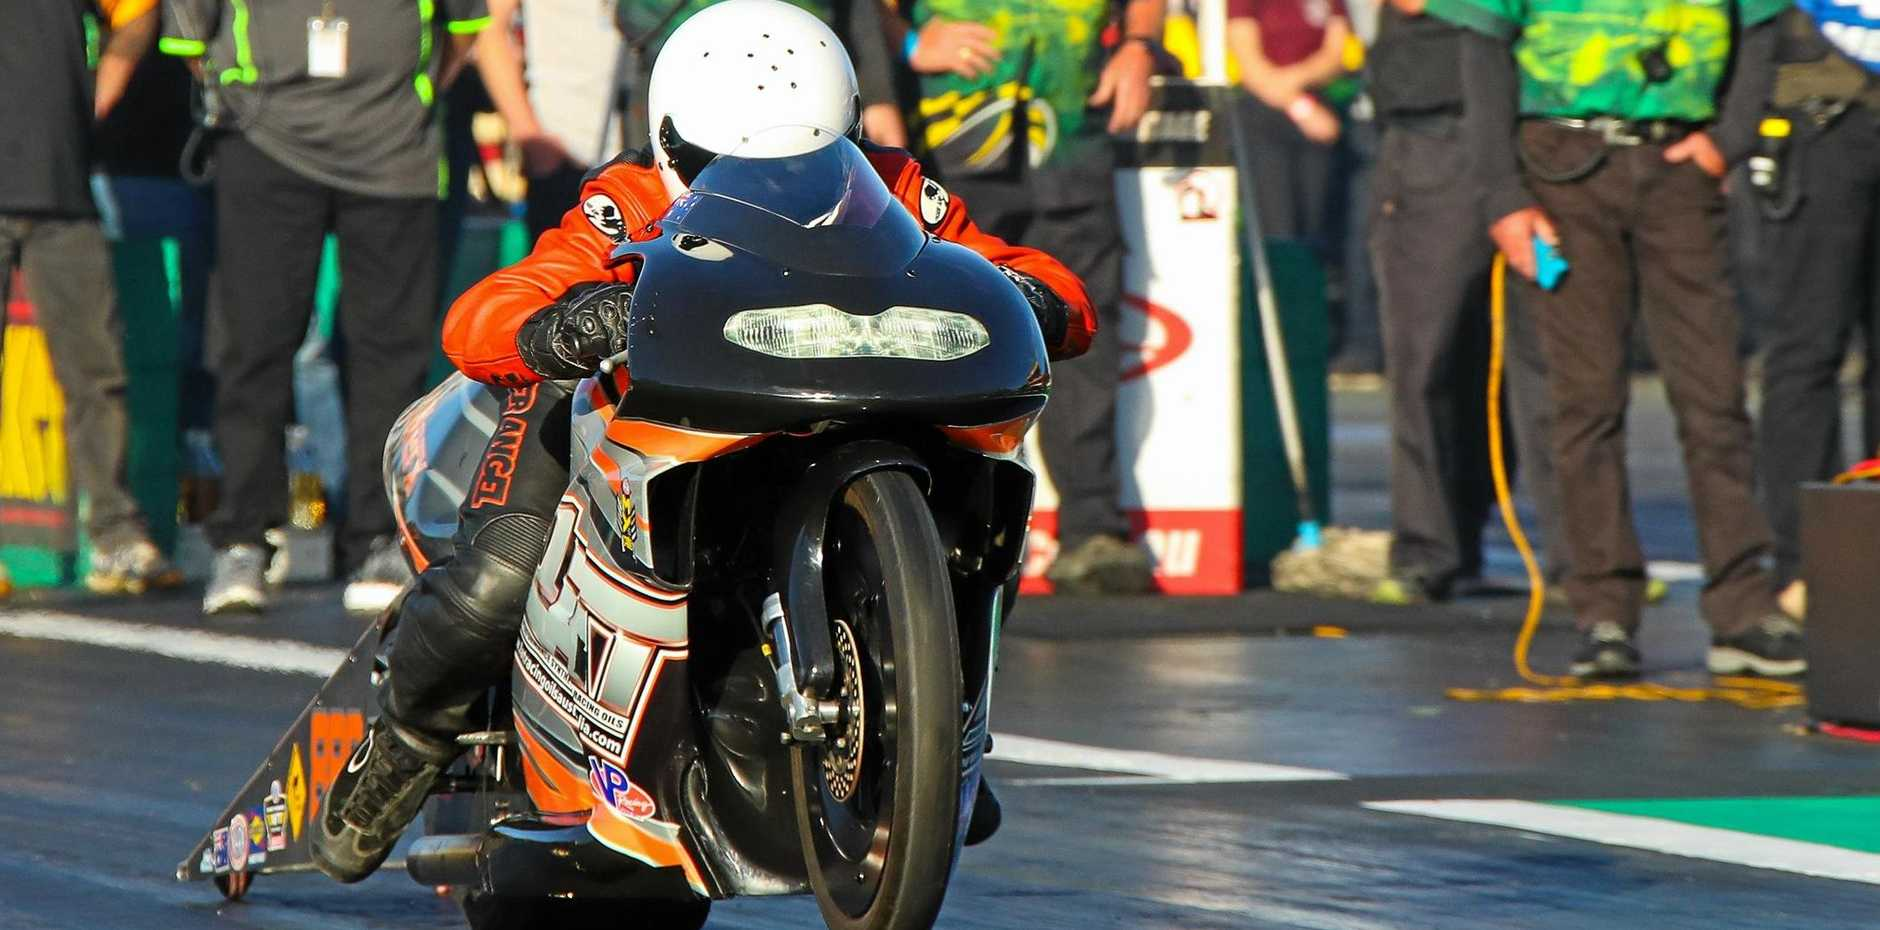 Ipswich drag racer Luke Crowley will be among the record-breaking competitors at next month's Winternationals at Willowbank Raceway.